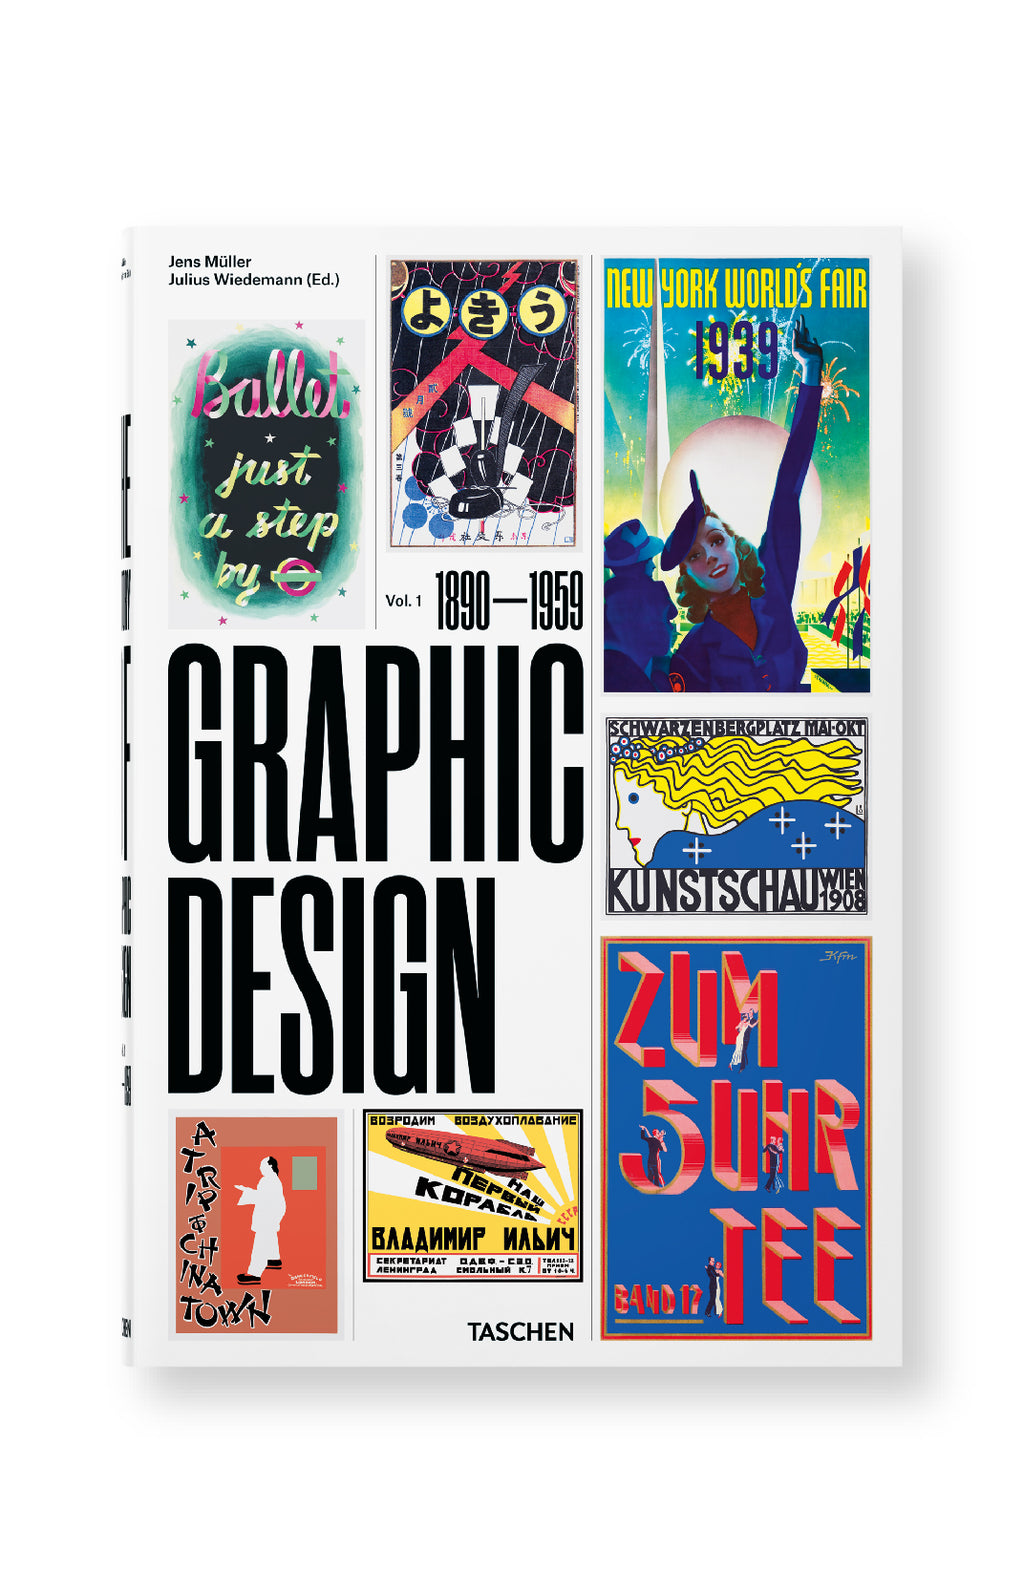 The History of Graphic Design. Vol. 1, 1890 - 1959